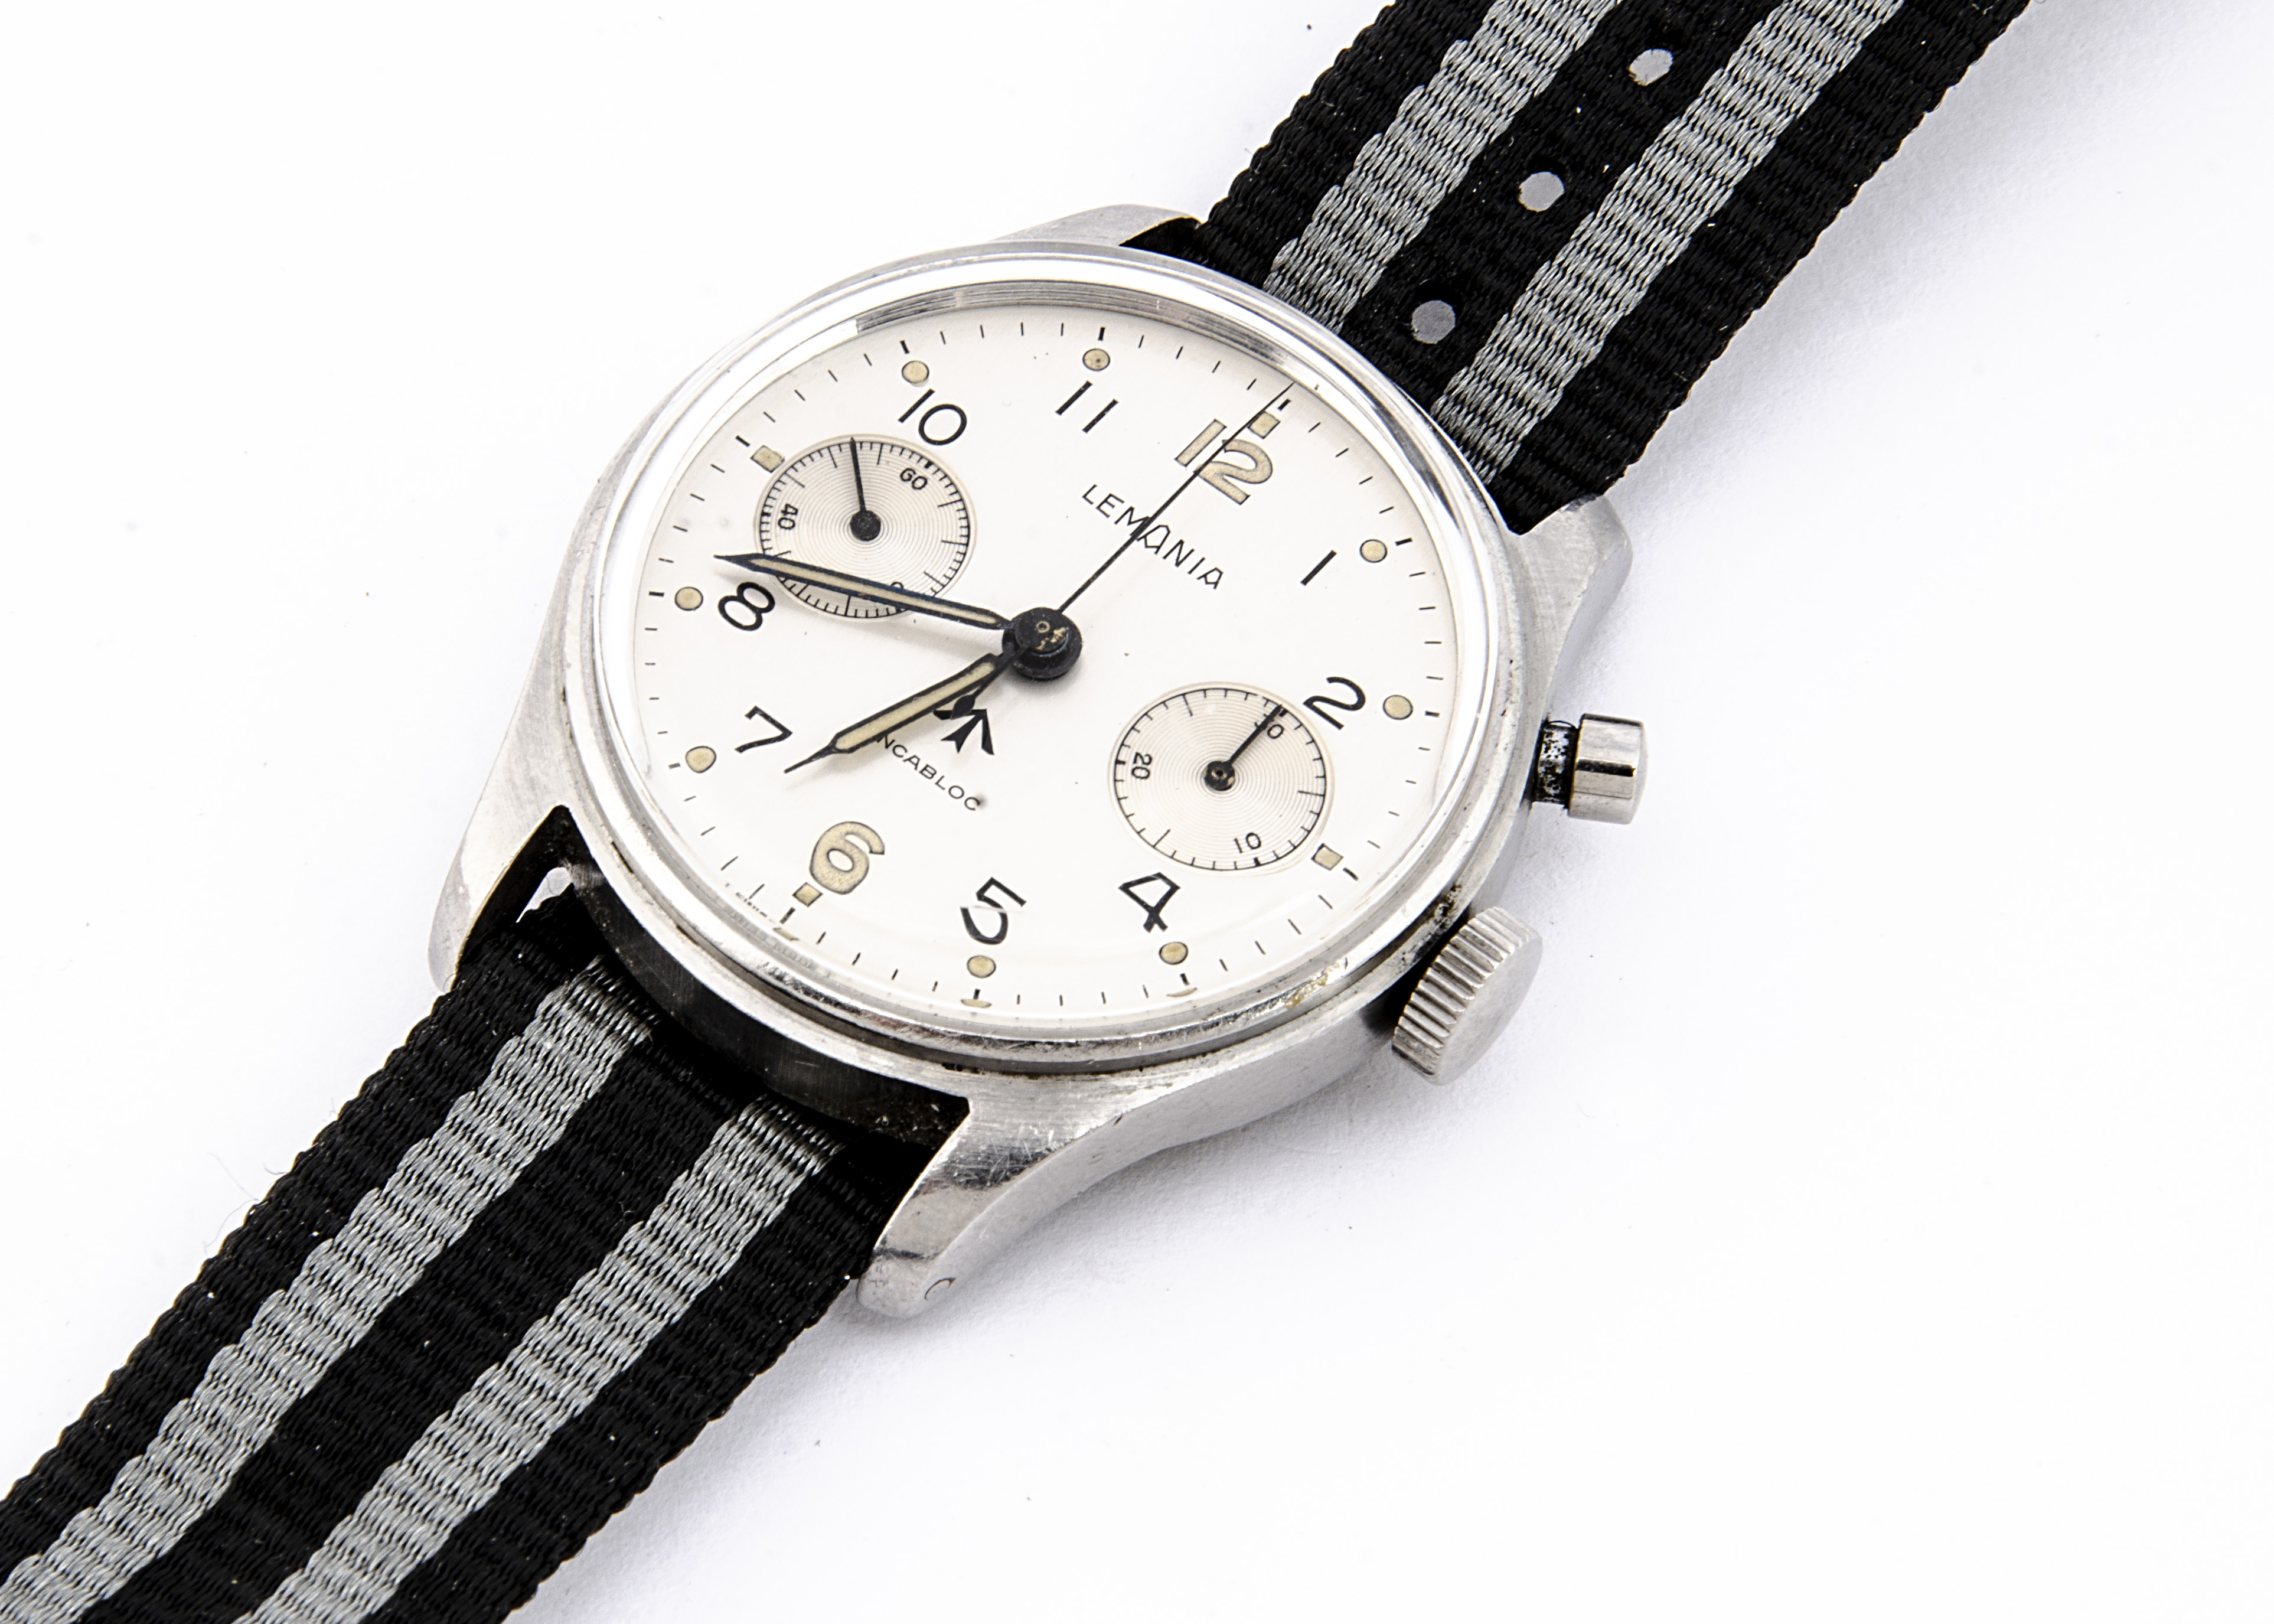 A c1950/60s Lemania Royal Navy / FAA single button chronograph stainless steel wristwatch, 37mm